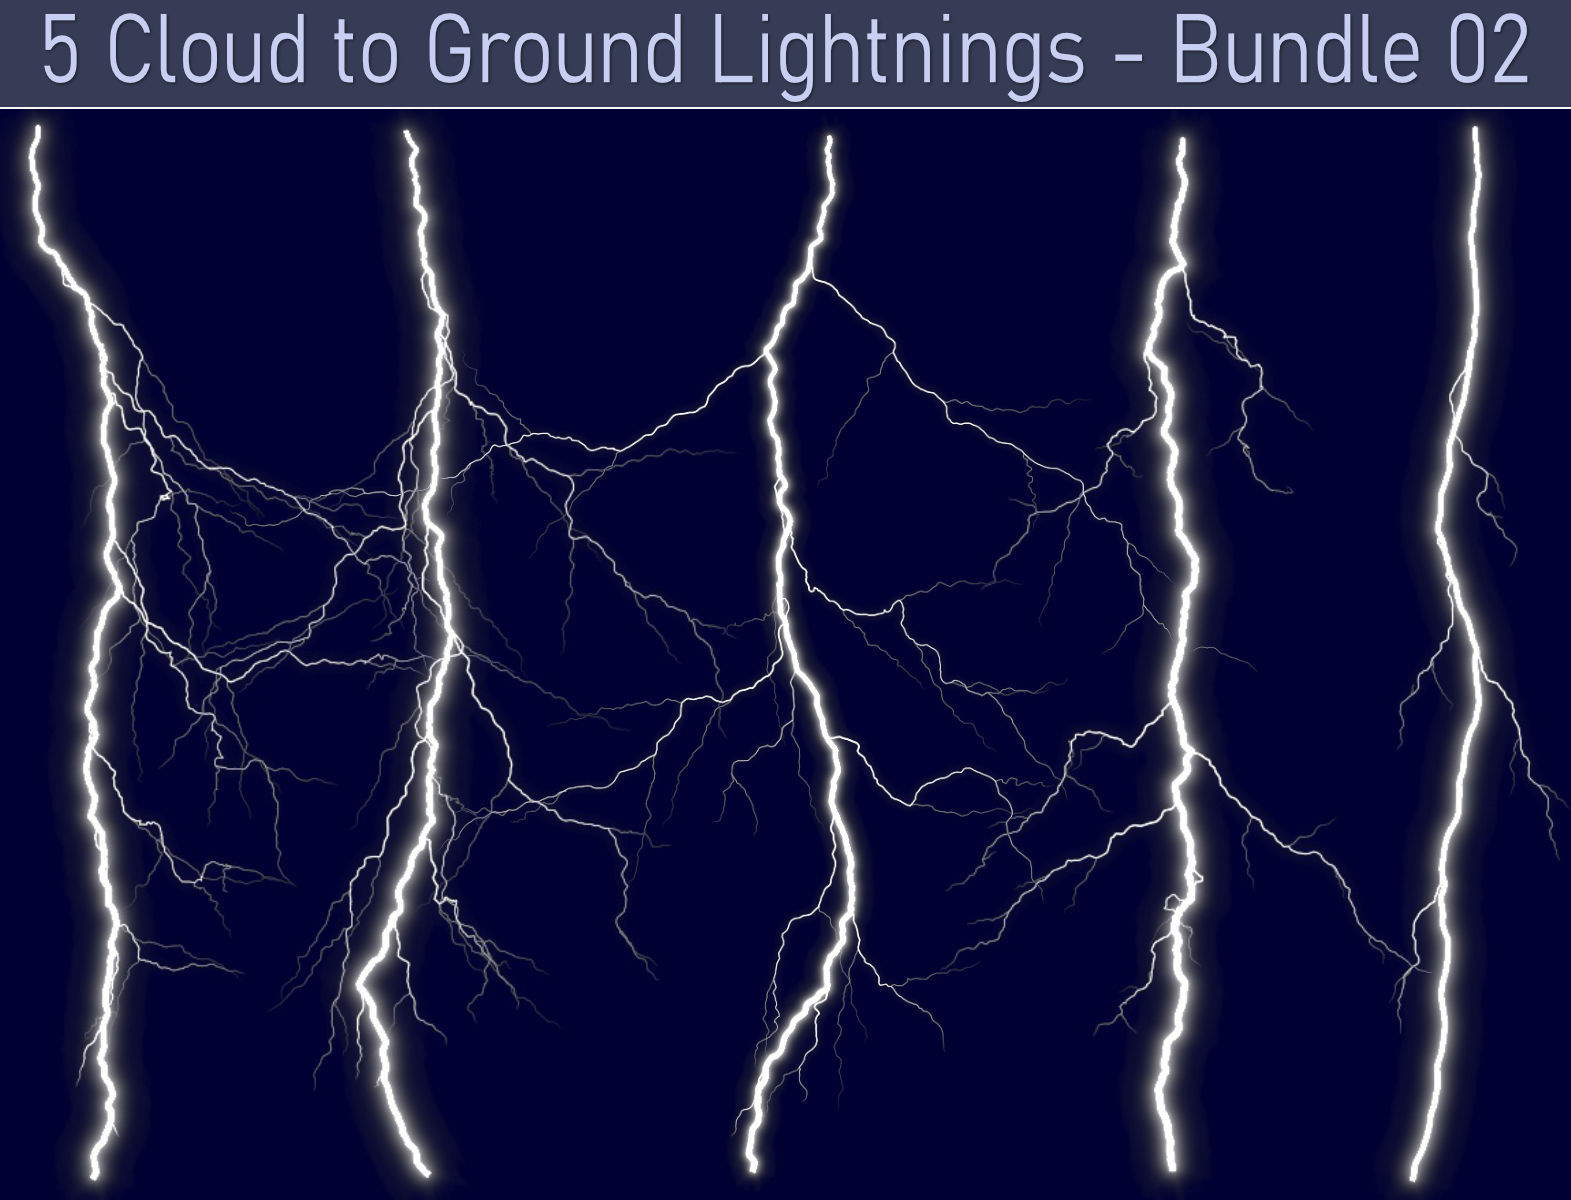 Realistic Lightnings Bundle 02 - 5 pack CG